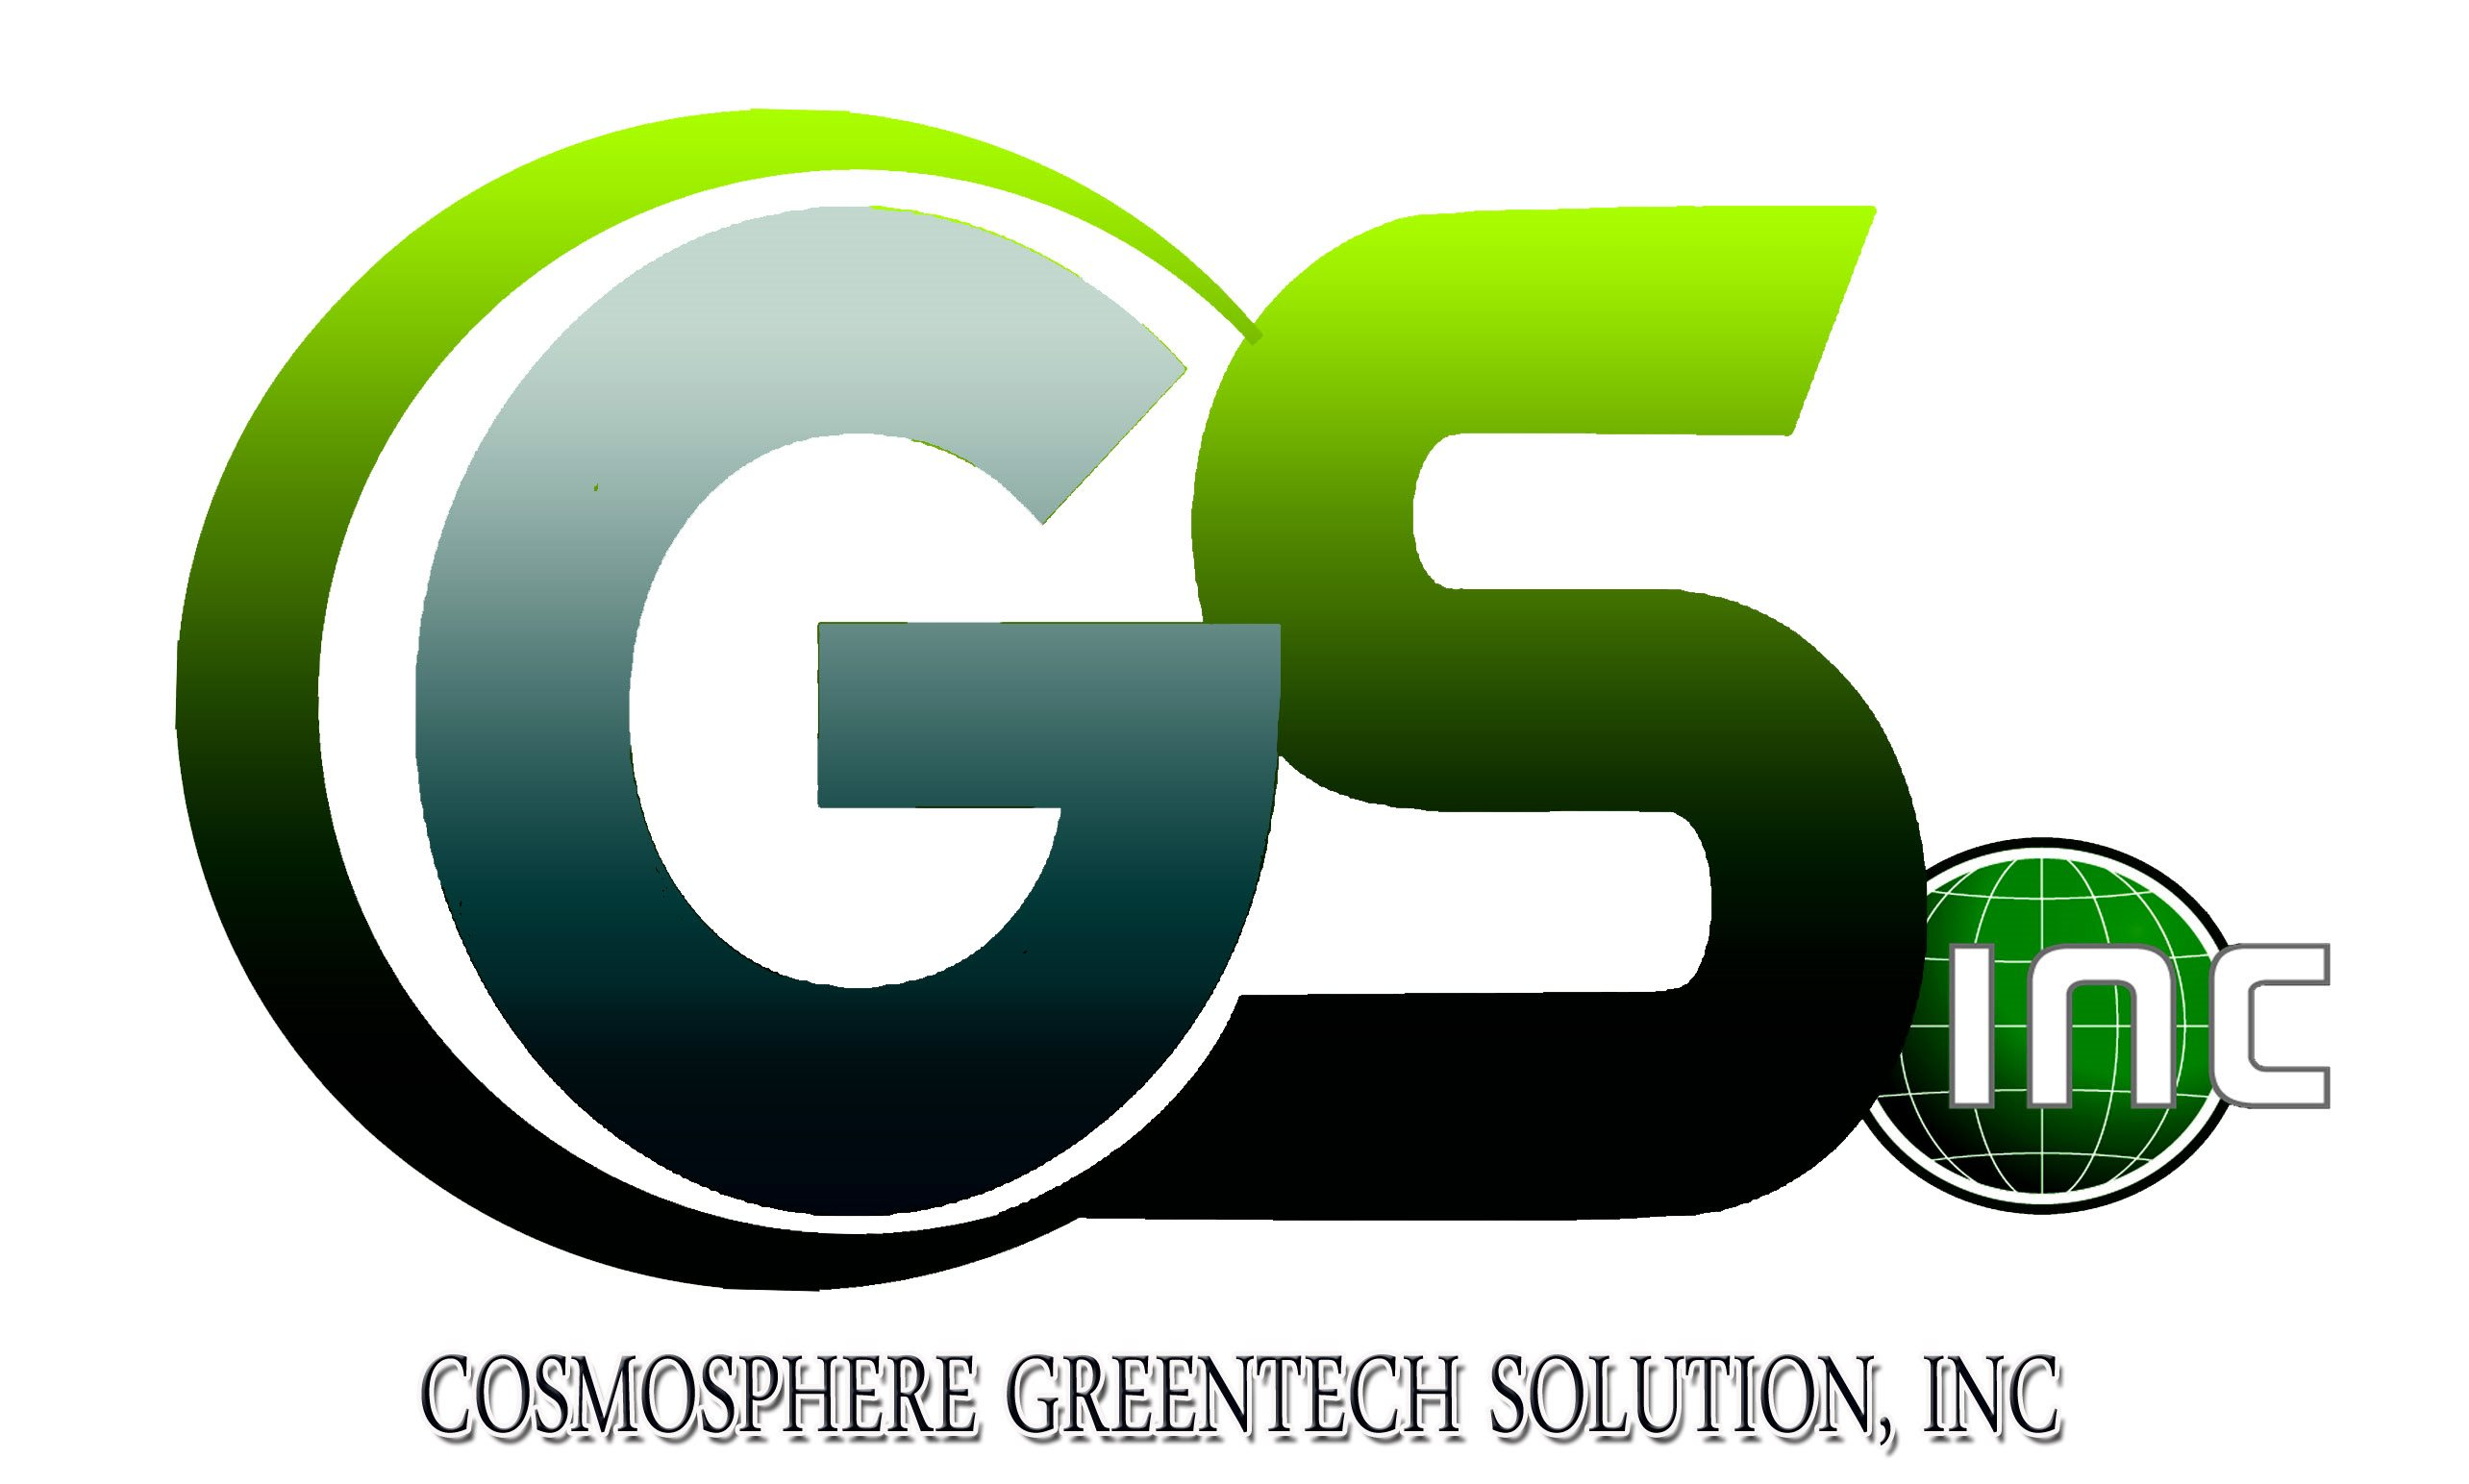 COSMOSPHERE GREENTECH SOLUTION INC.